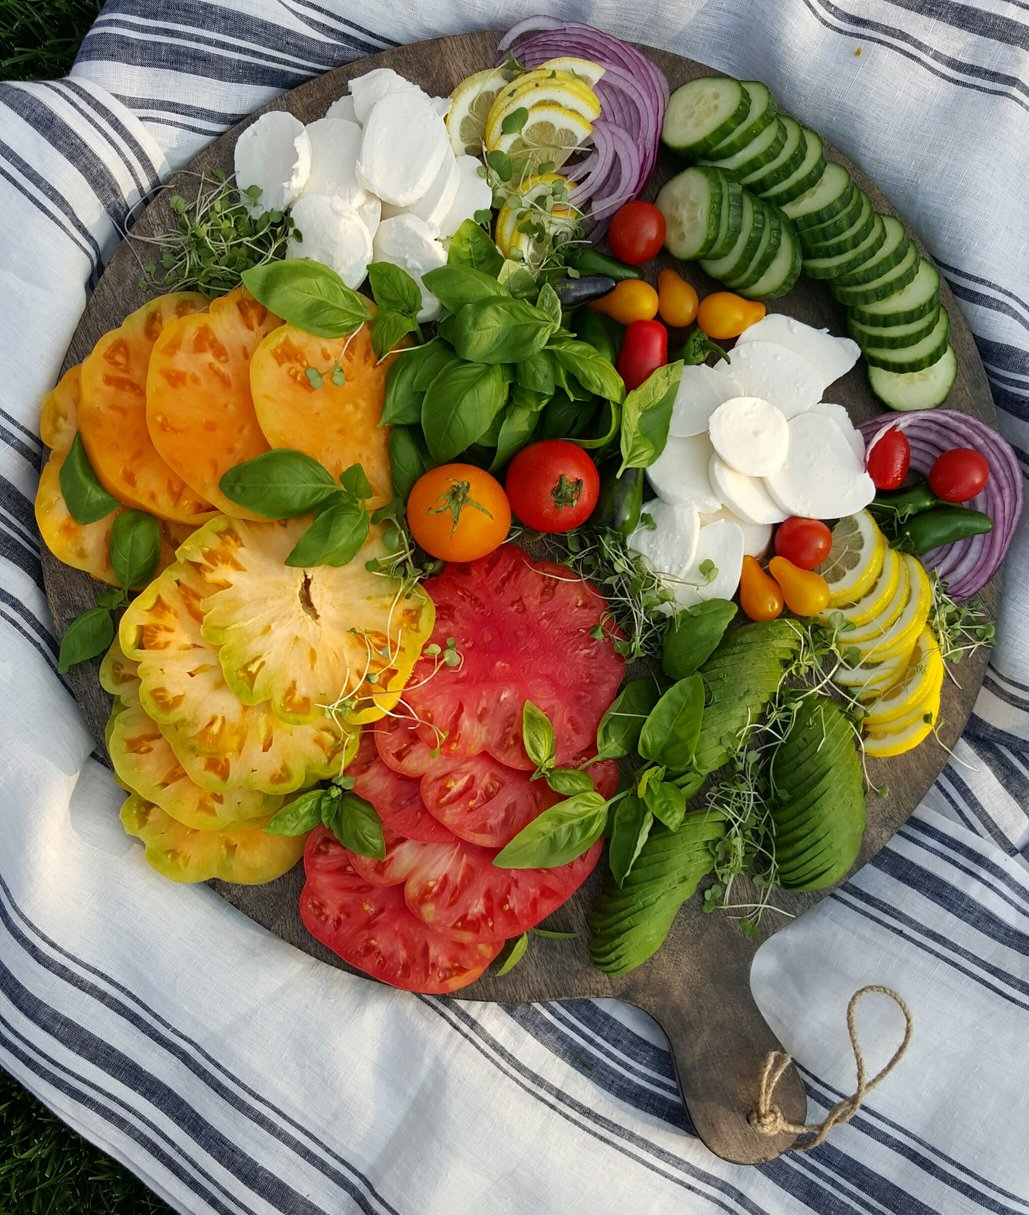 Create Your Own Heirloom Tray for Clean Eating